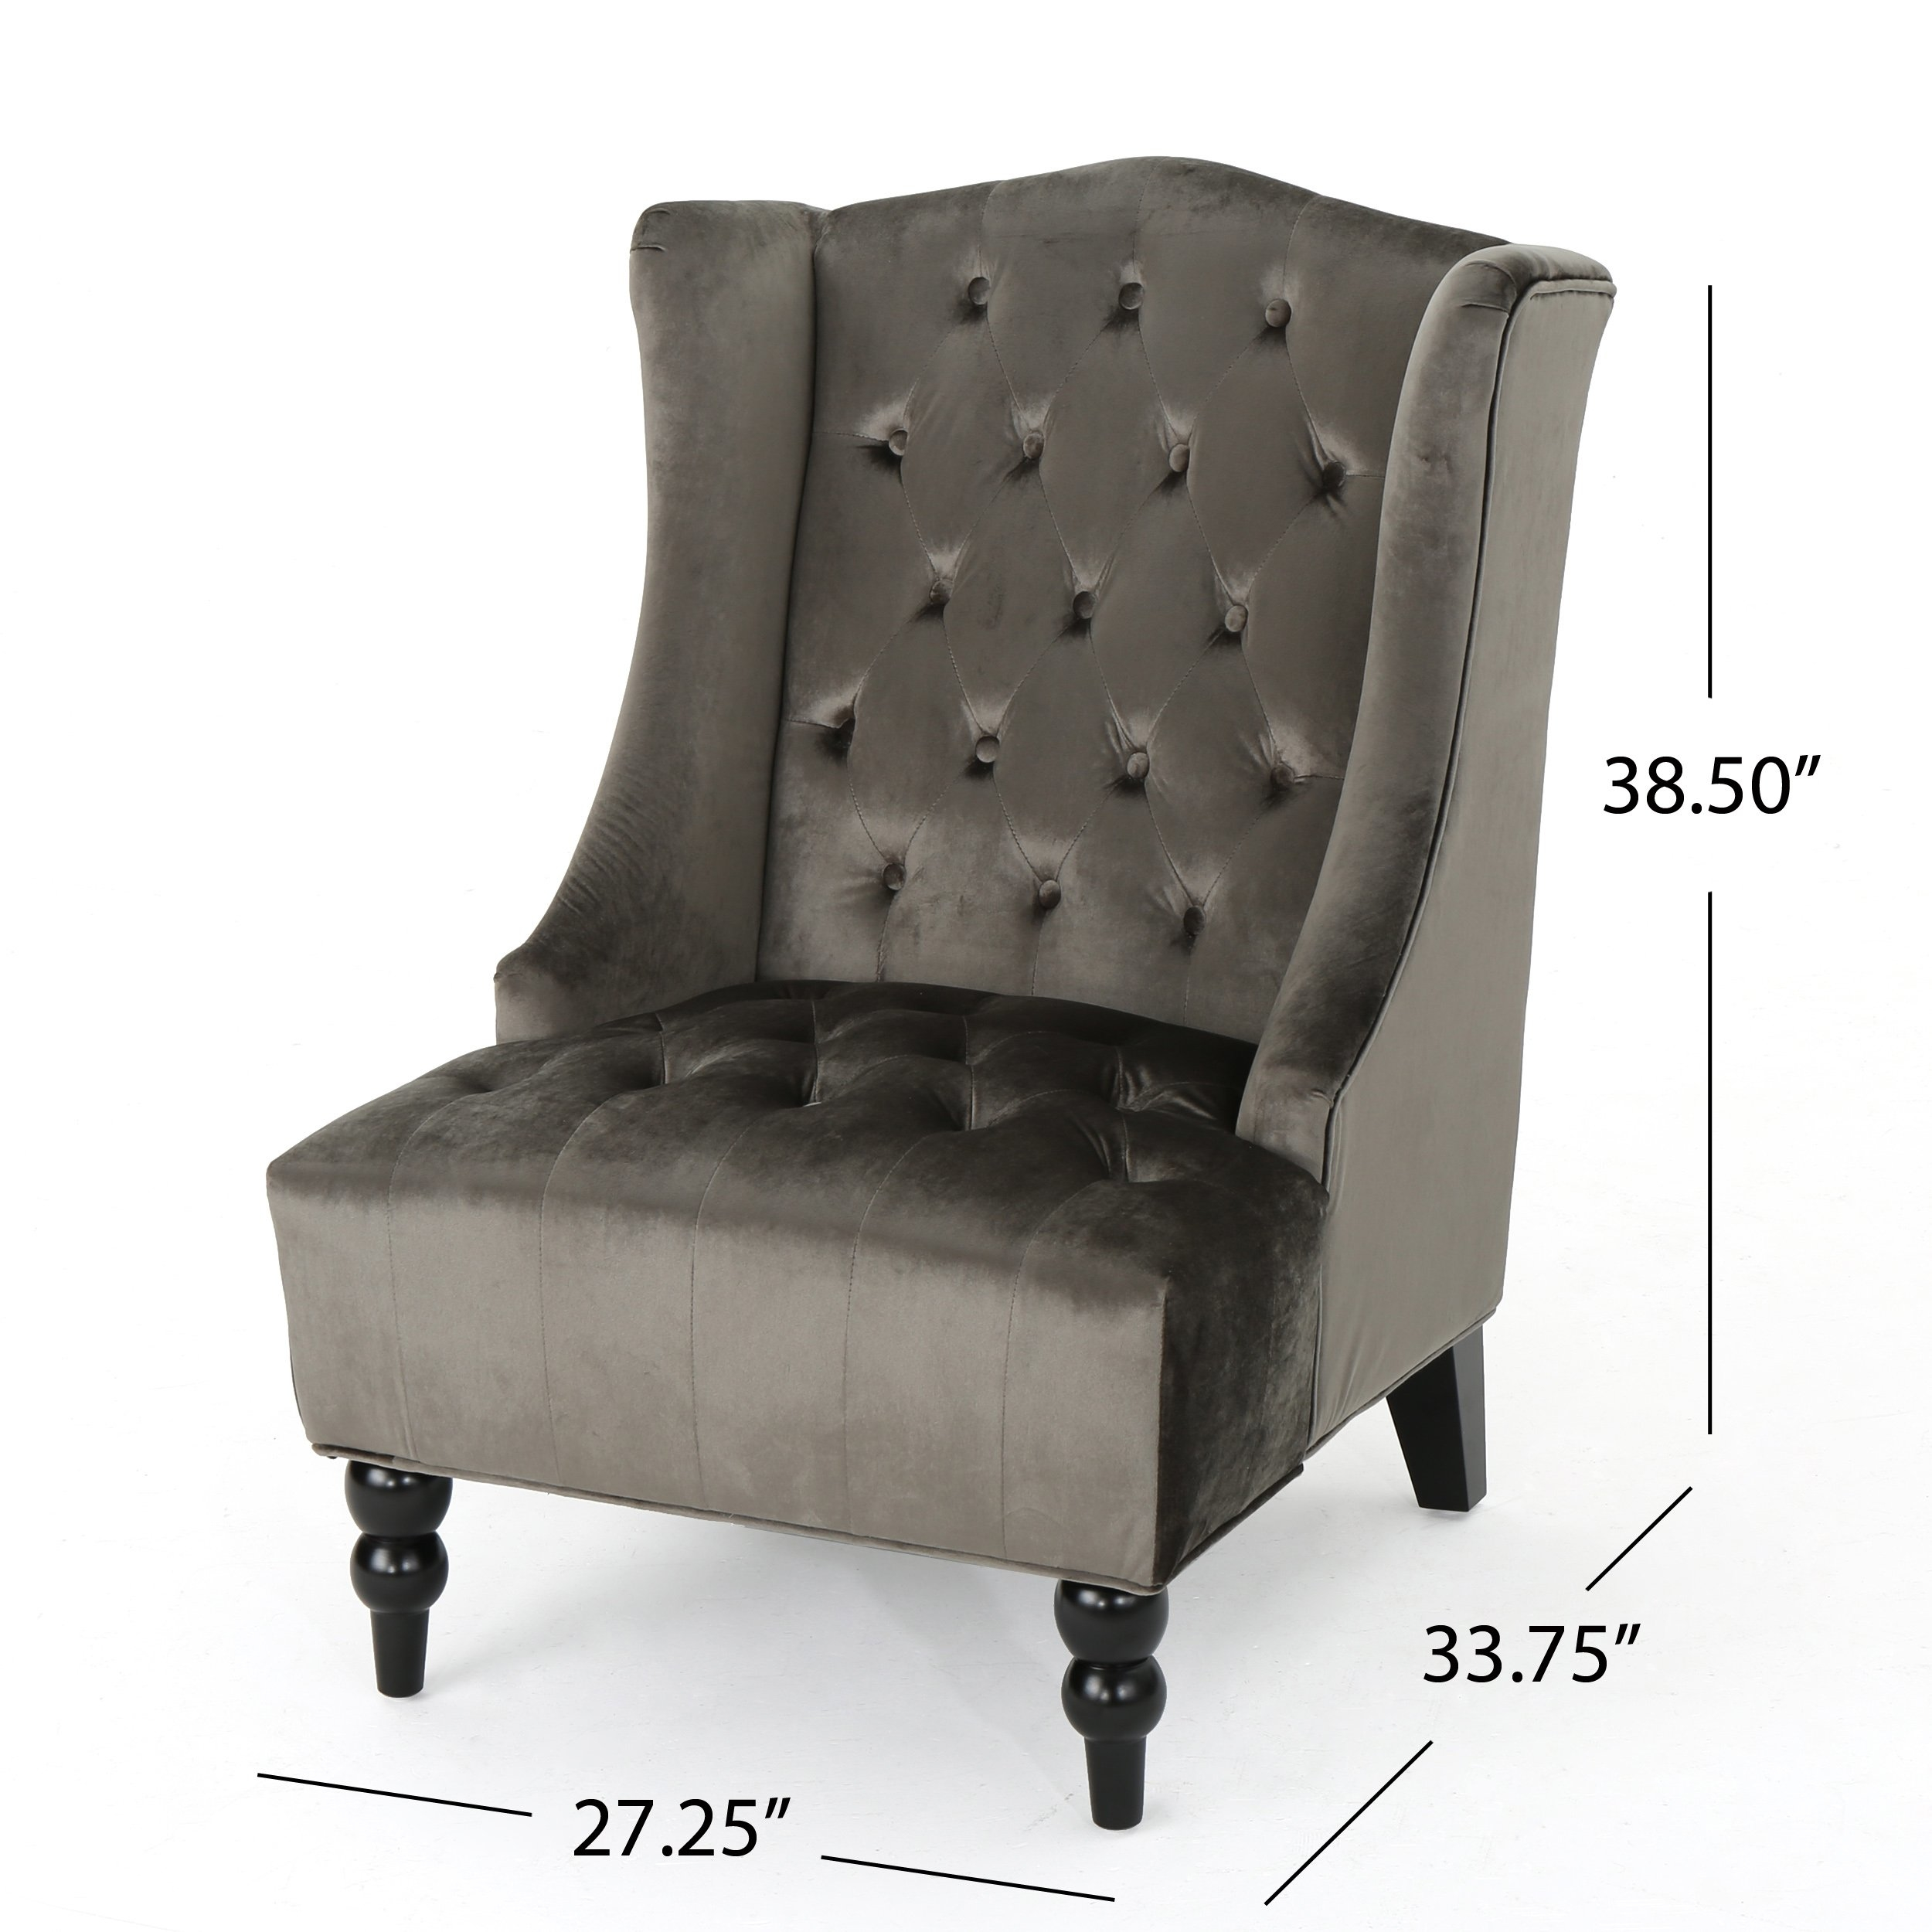 Tufted High Back Chair Us 172 38 Talisa Winged High Back Tufted New Velvet Club Chair In Living Room Chairs From Furniture On Aliexpress Alibaba Group